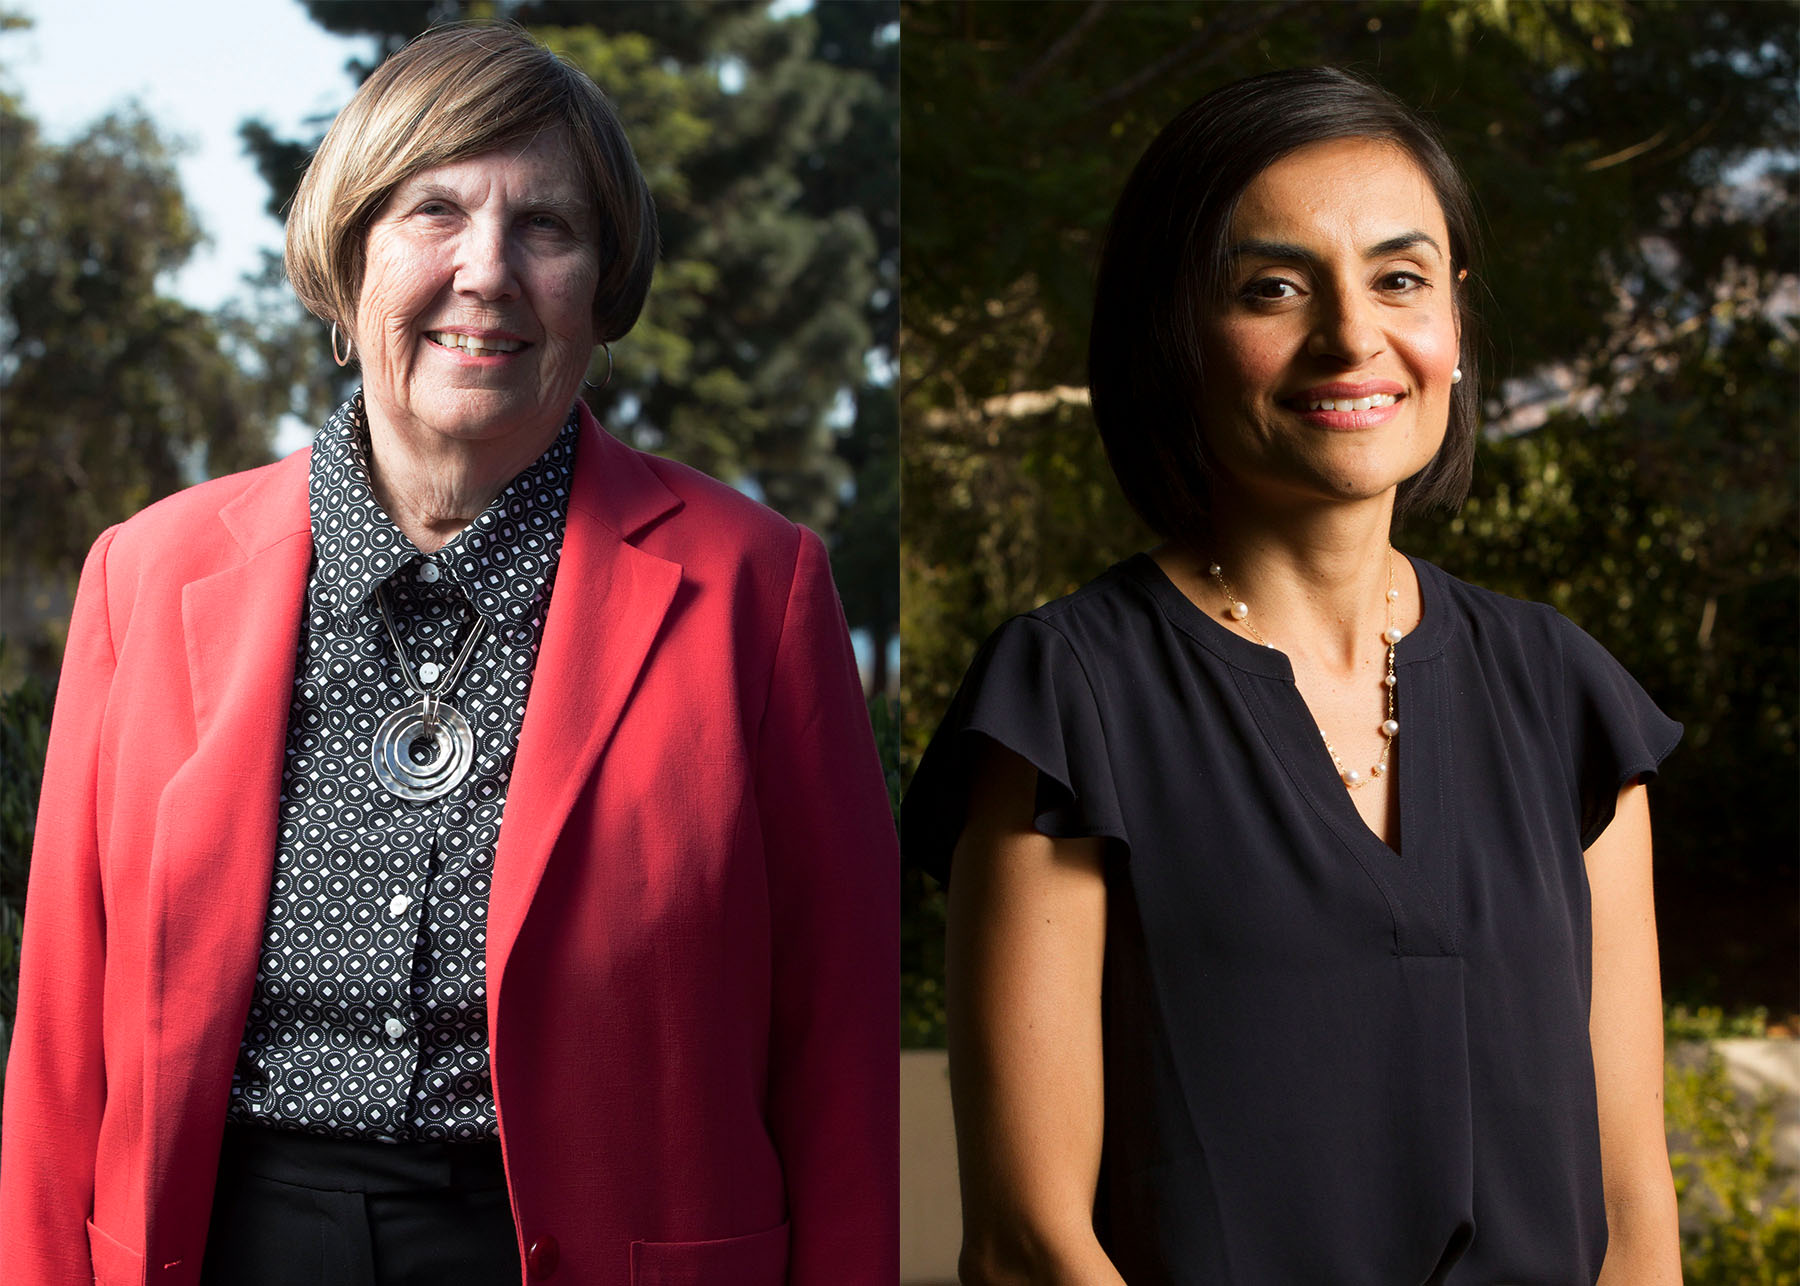 Marianne Kugler (left) and Veronica Gallardo are up for re-election to the Board of Trustees, Thursday, Sept. 29, at City College. Kugler and Gallardo are running uncontested along with Craig Nelson, who was unavailable to be photographed.